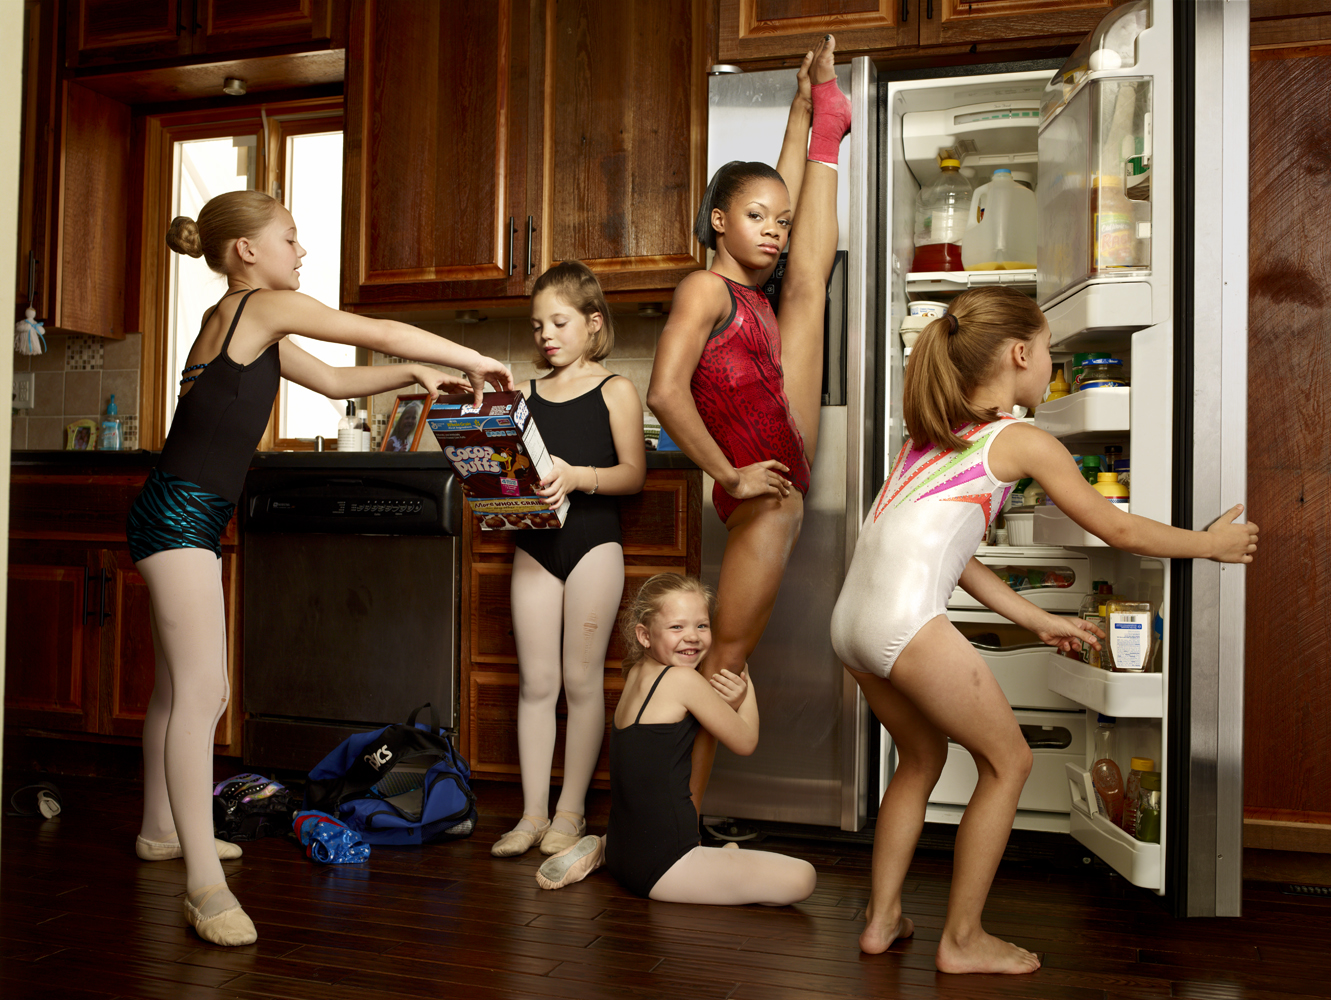 Douglas, who is from Virginia, lives with a host family so she can train at Chow's Gymnastics in Des Moines, Iowa. She is seen here with her young host sisters–all dancers or gymnasts themselves.